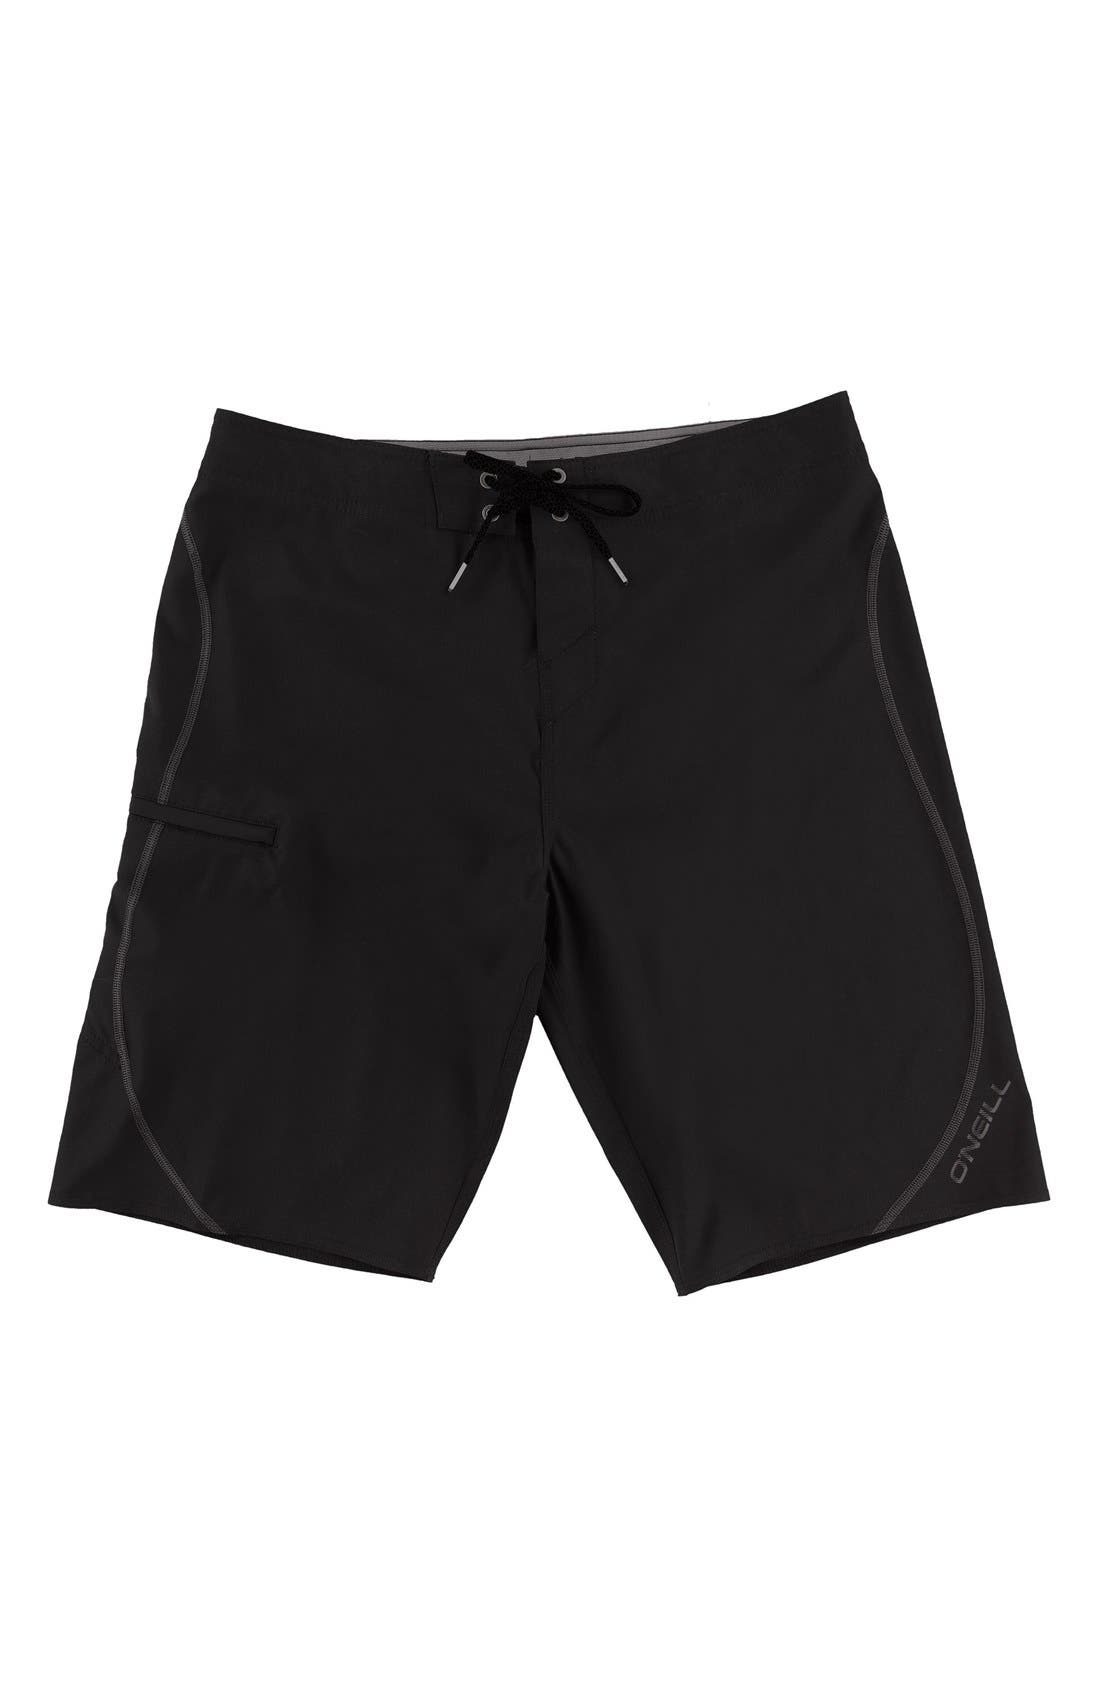 Alternate Image 1 Selected - O'Neill Hyperfreak S-Seam Stretch Board Shorts (Big Boys)